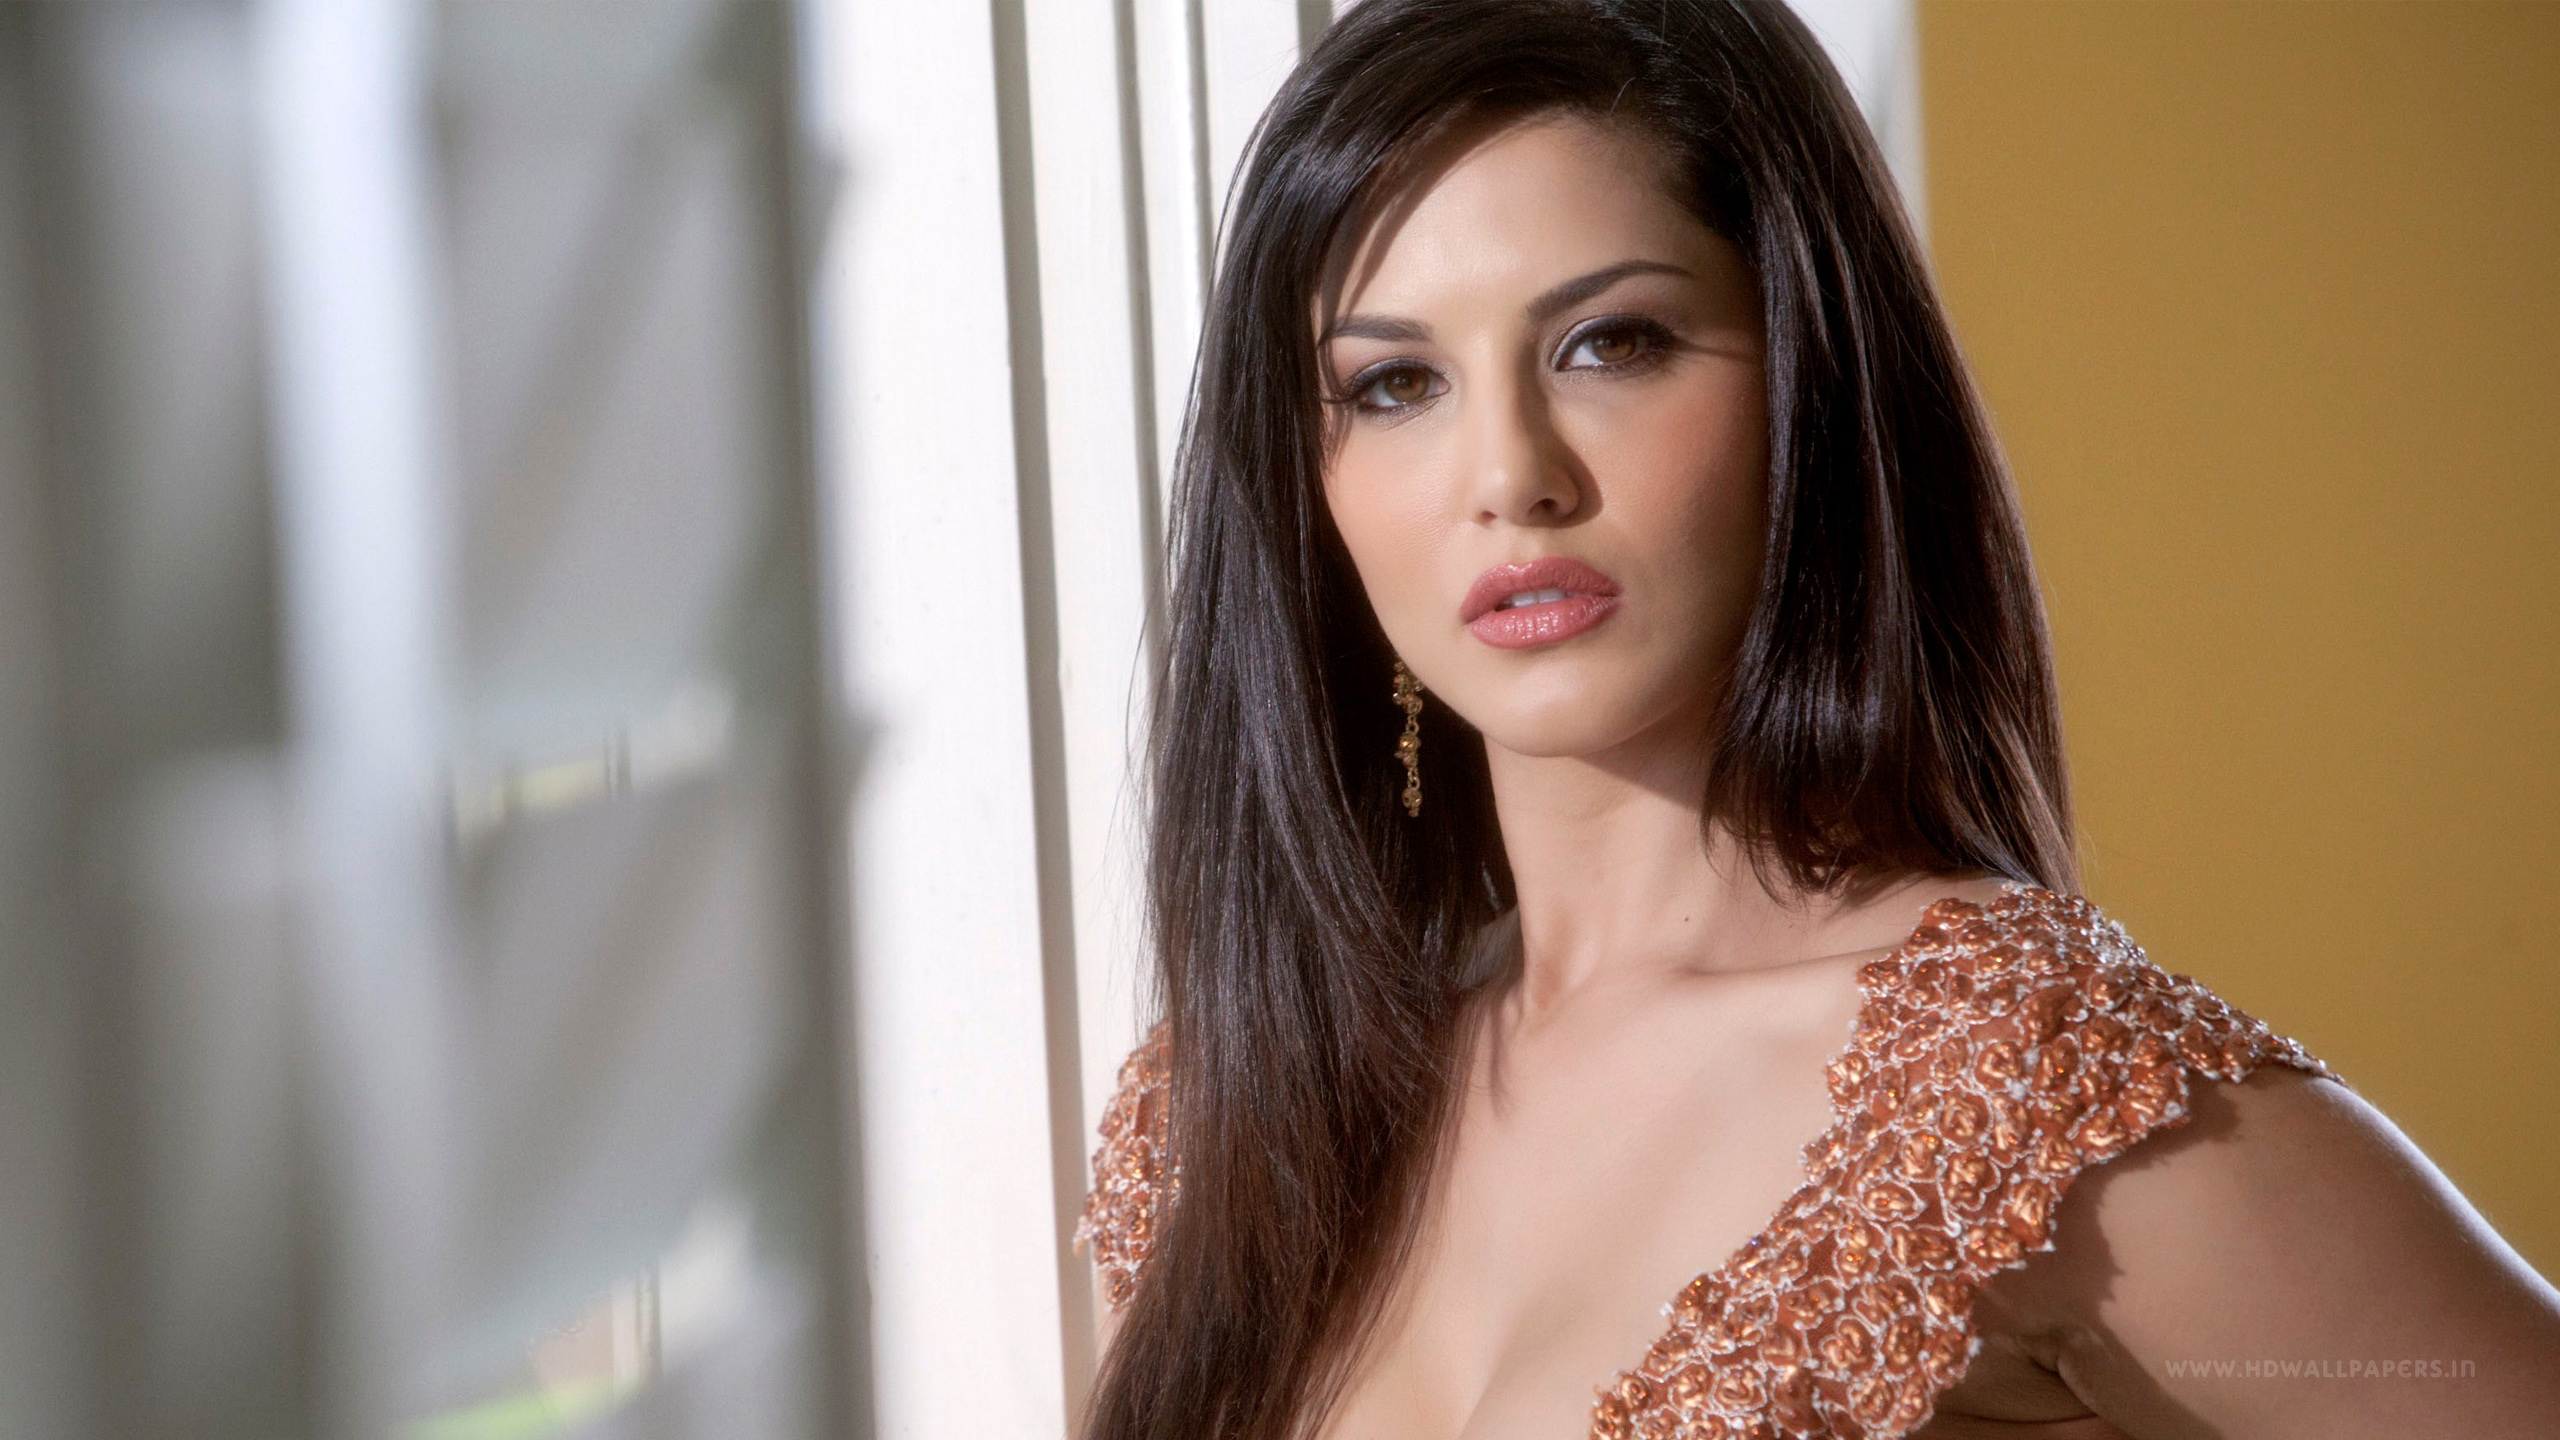 Bollywood Actress Sunny Leone 2017 Wallpapers Hd Wallpapers